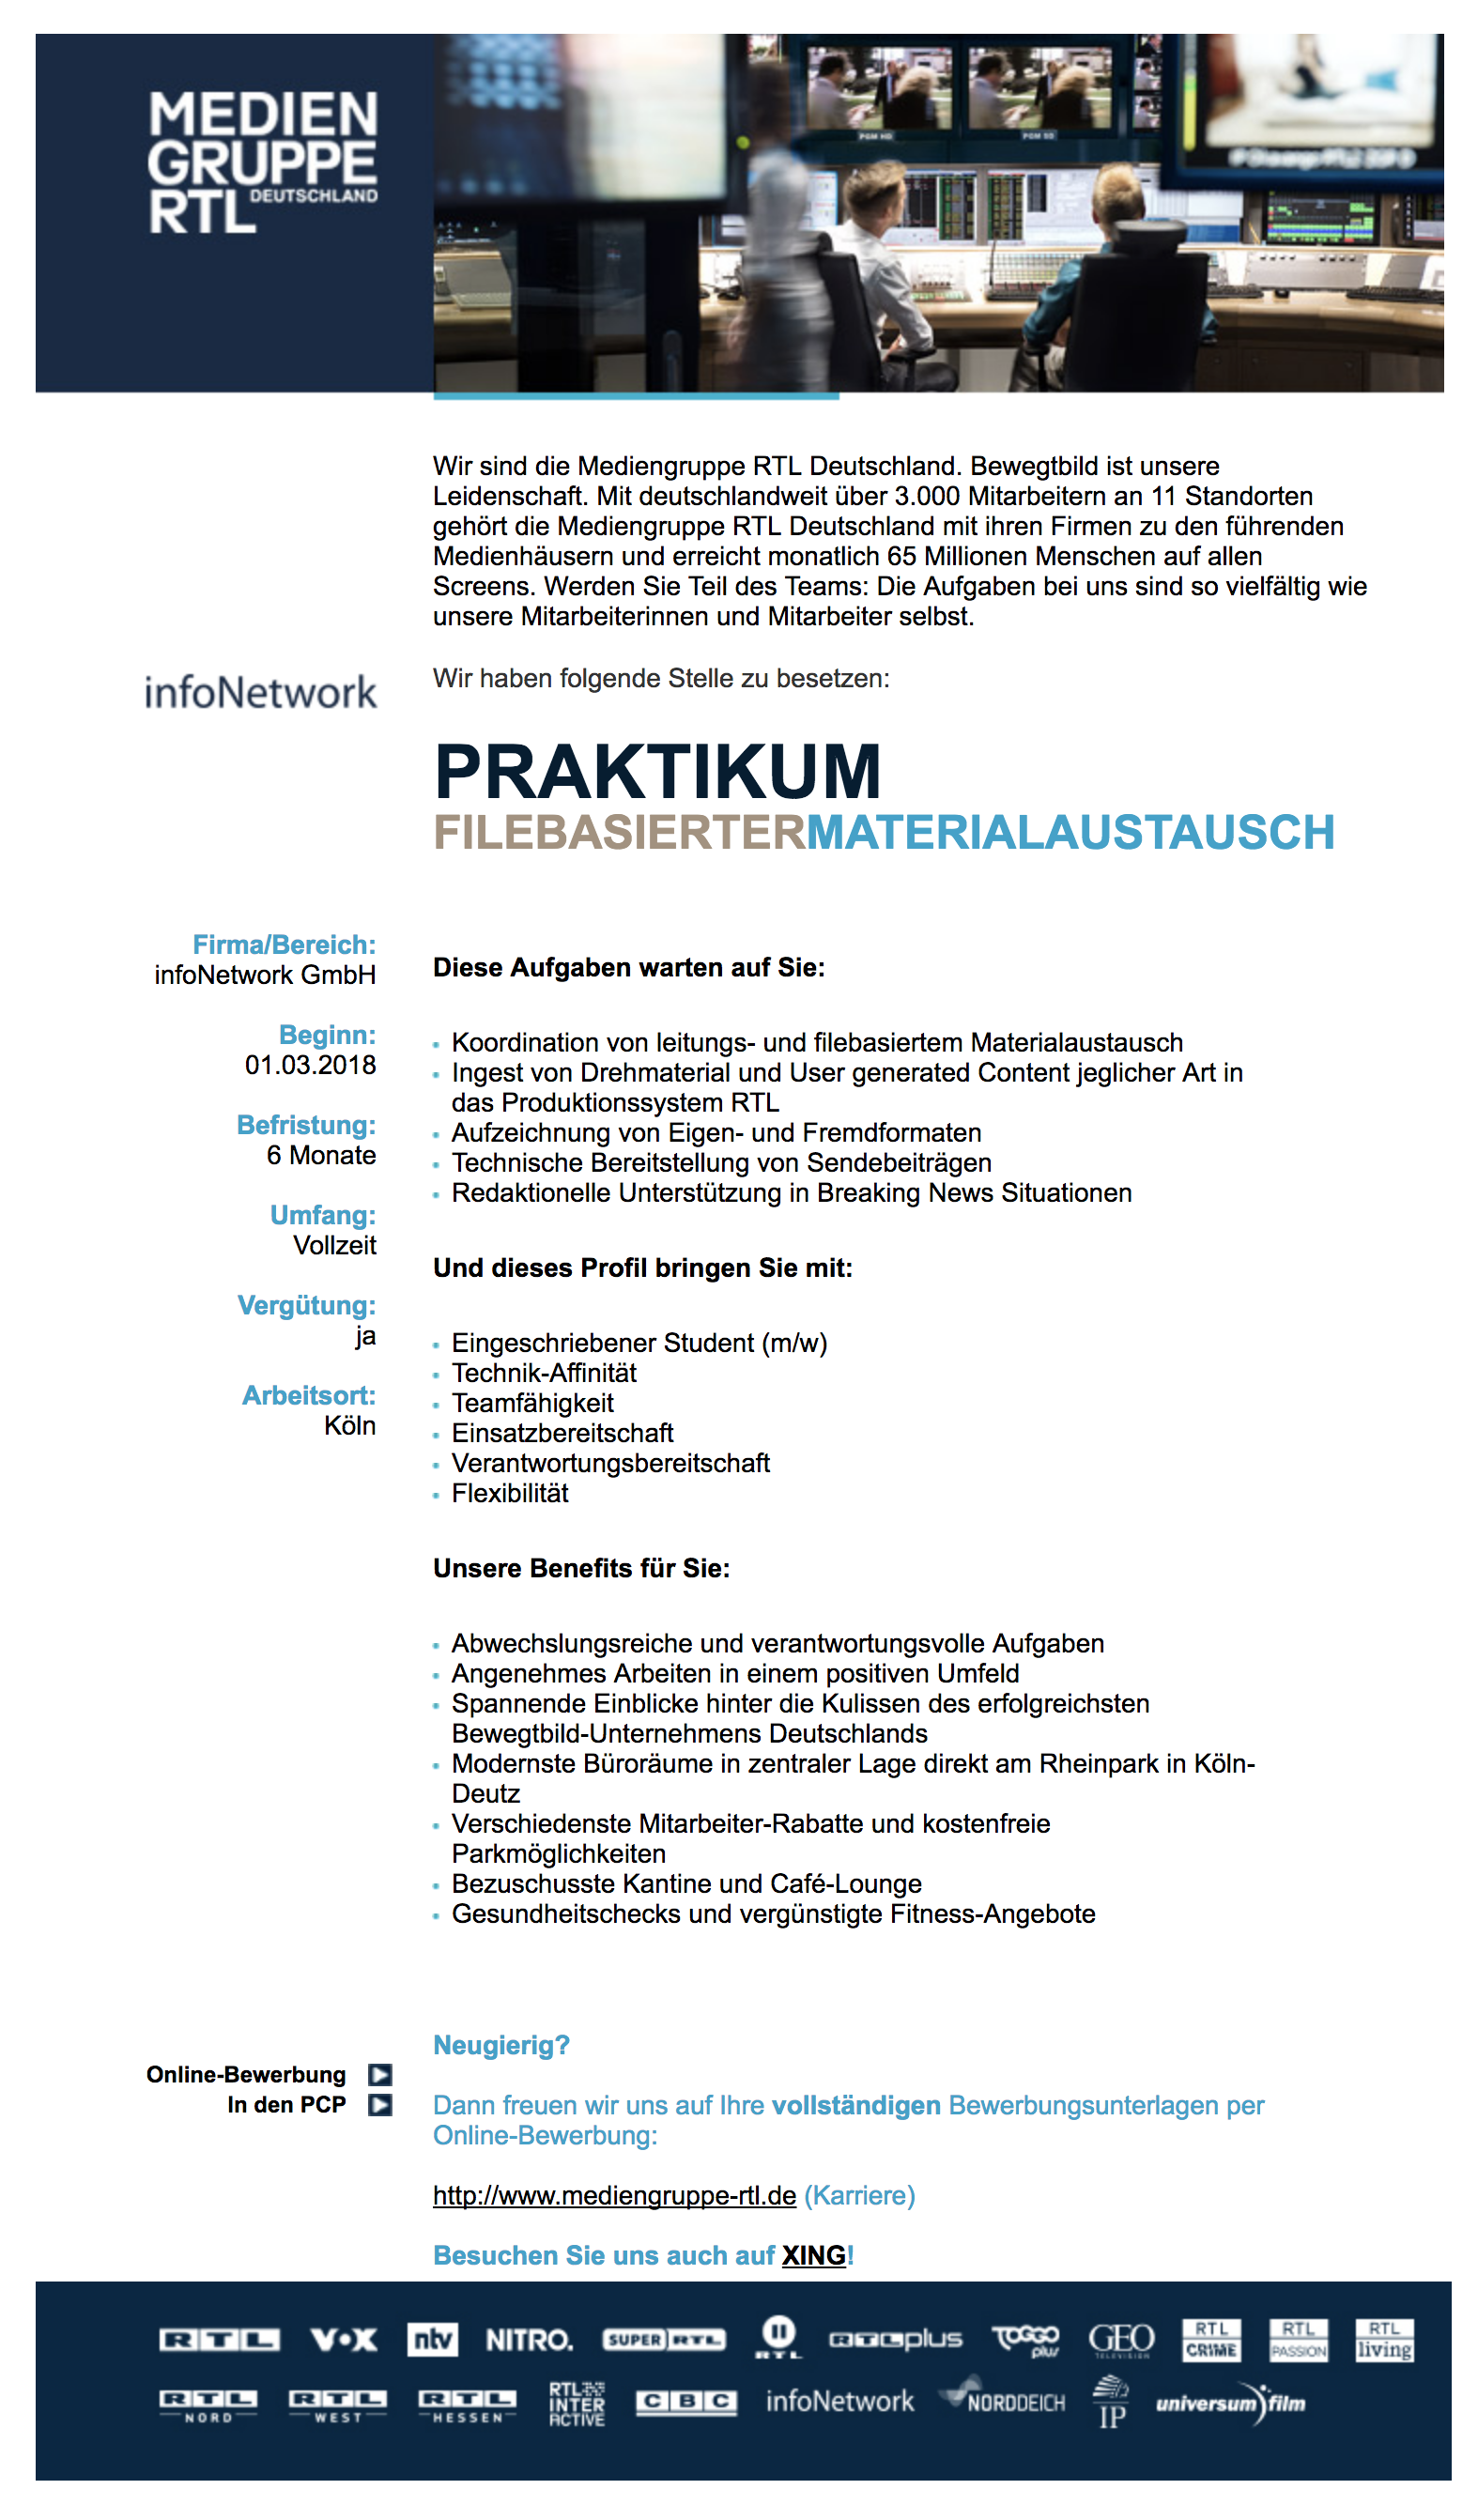 Praktikum filebasierter Materialaustausch (infoNetwork)